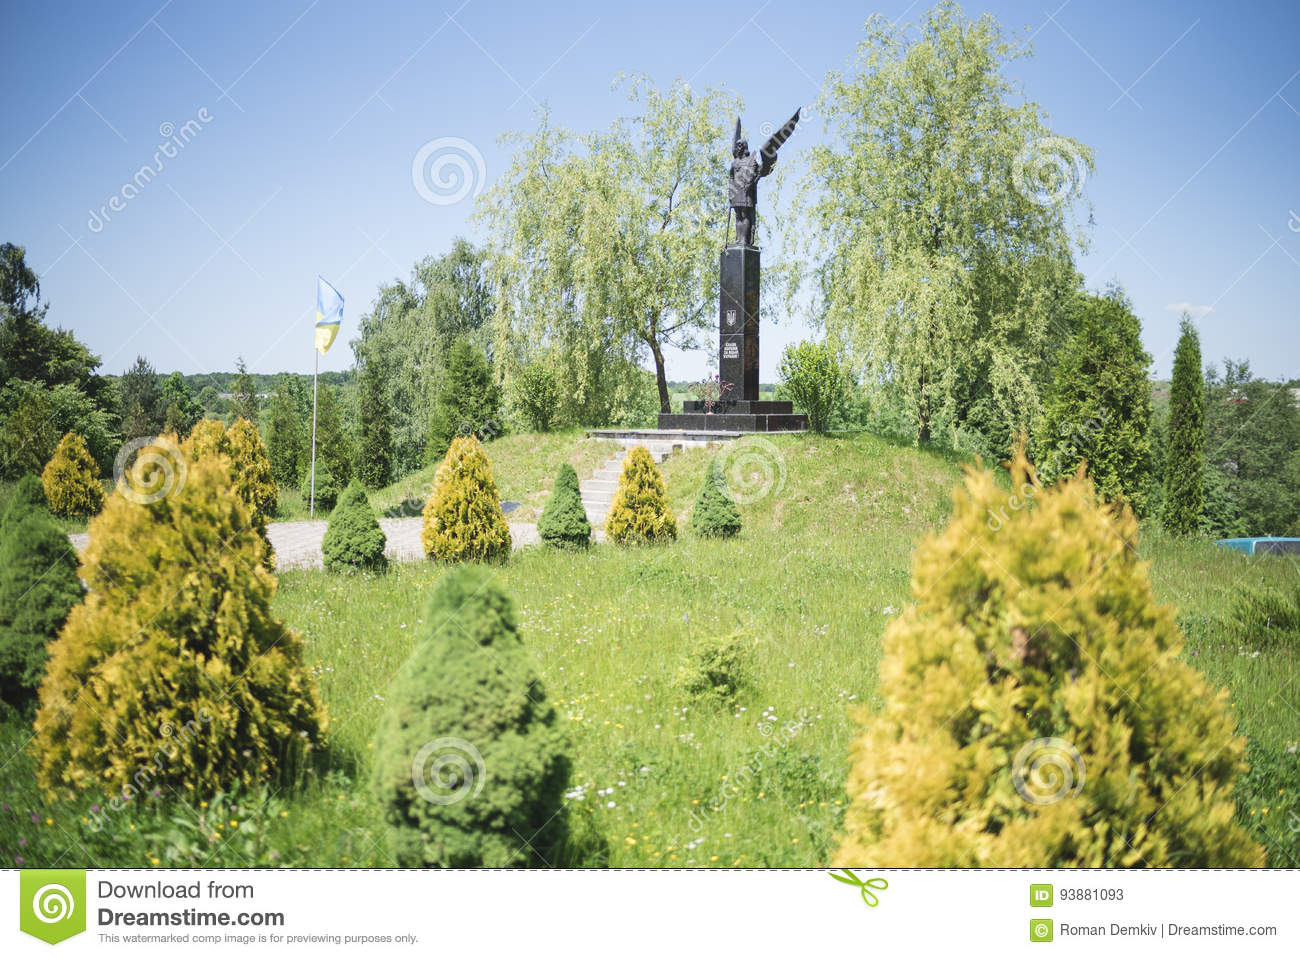 Drohobych, Western Ukraine - June 3, 2017: Monument of Fame to the fighters for freedom of Ukraine